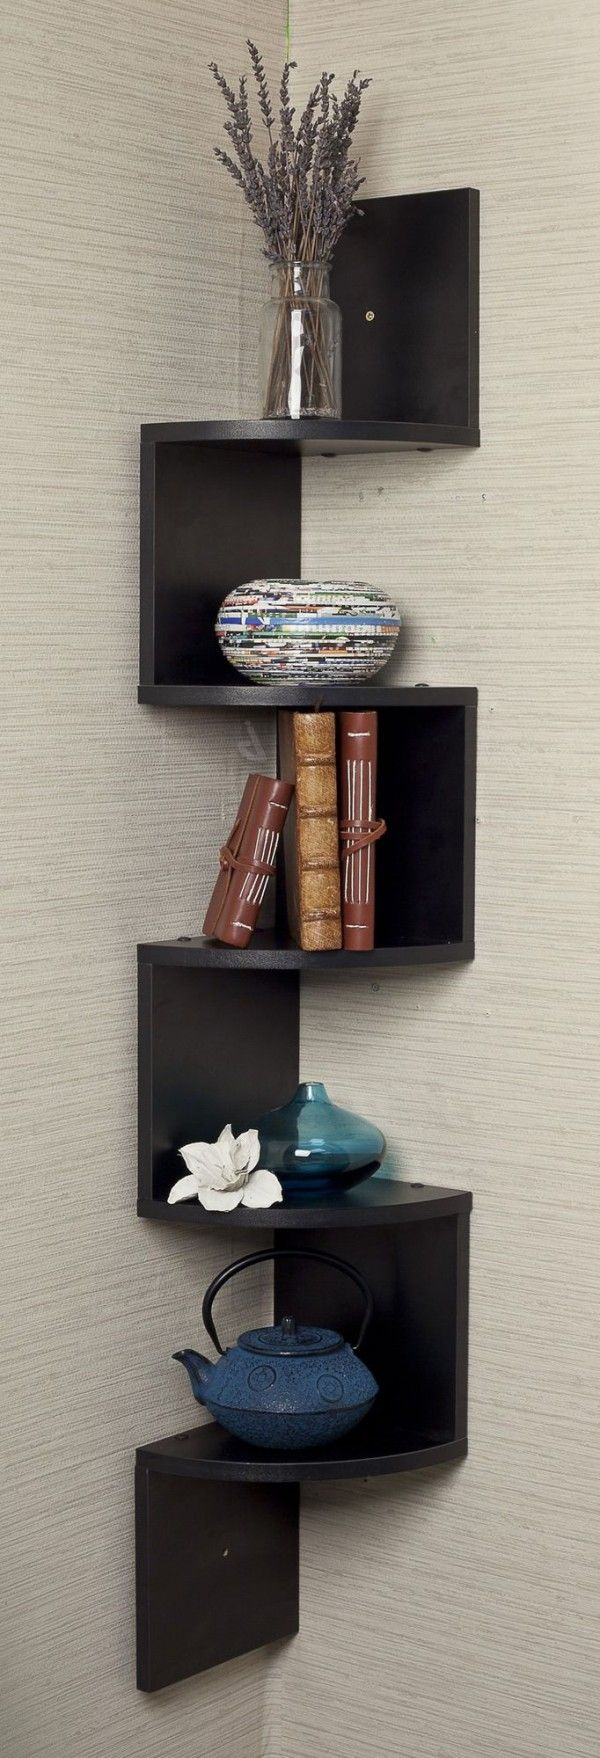 rules of thumb for the perfect home decor  check corner shelf  -  rules of thumb for the perfect home decor living room